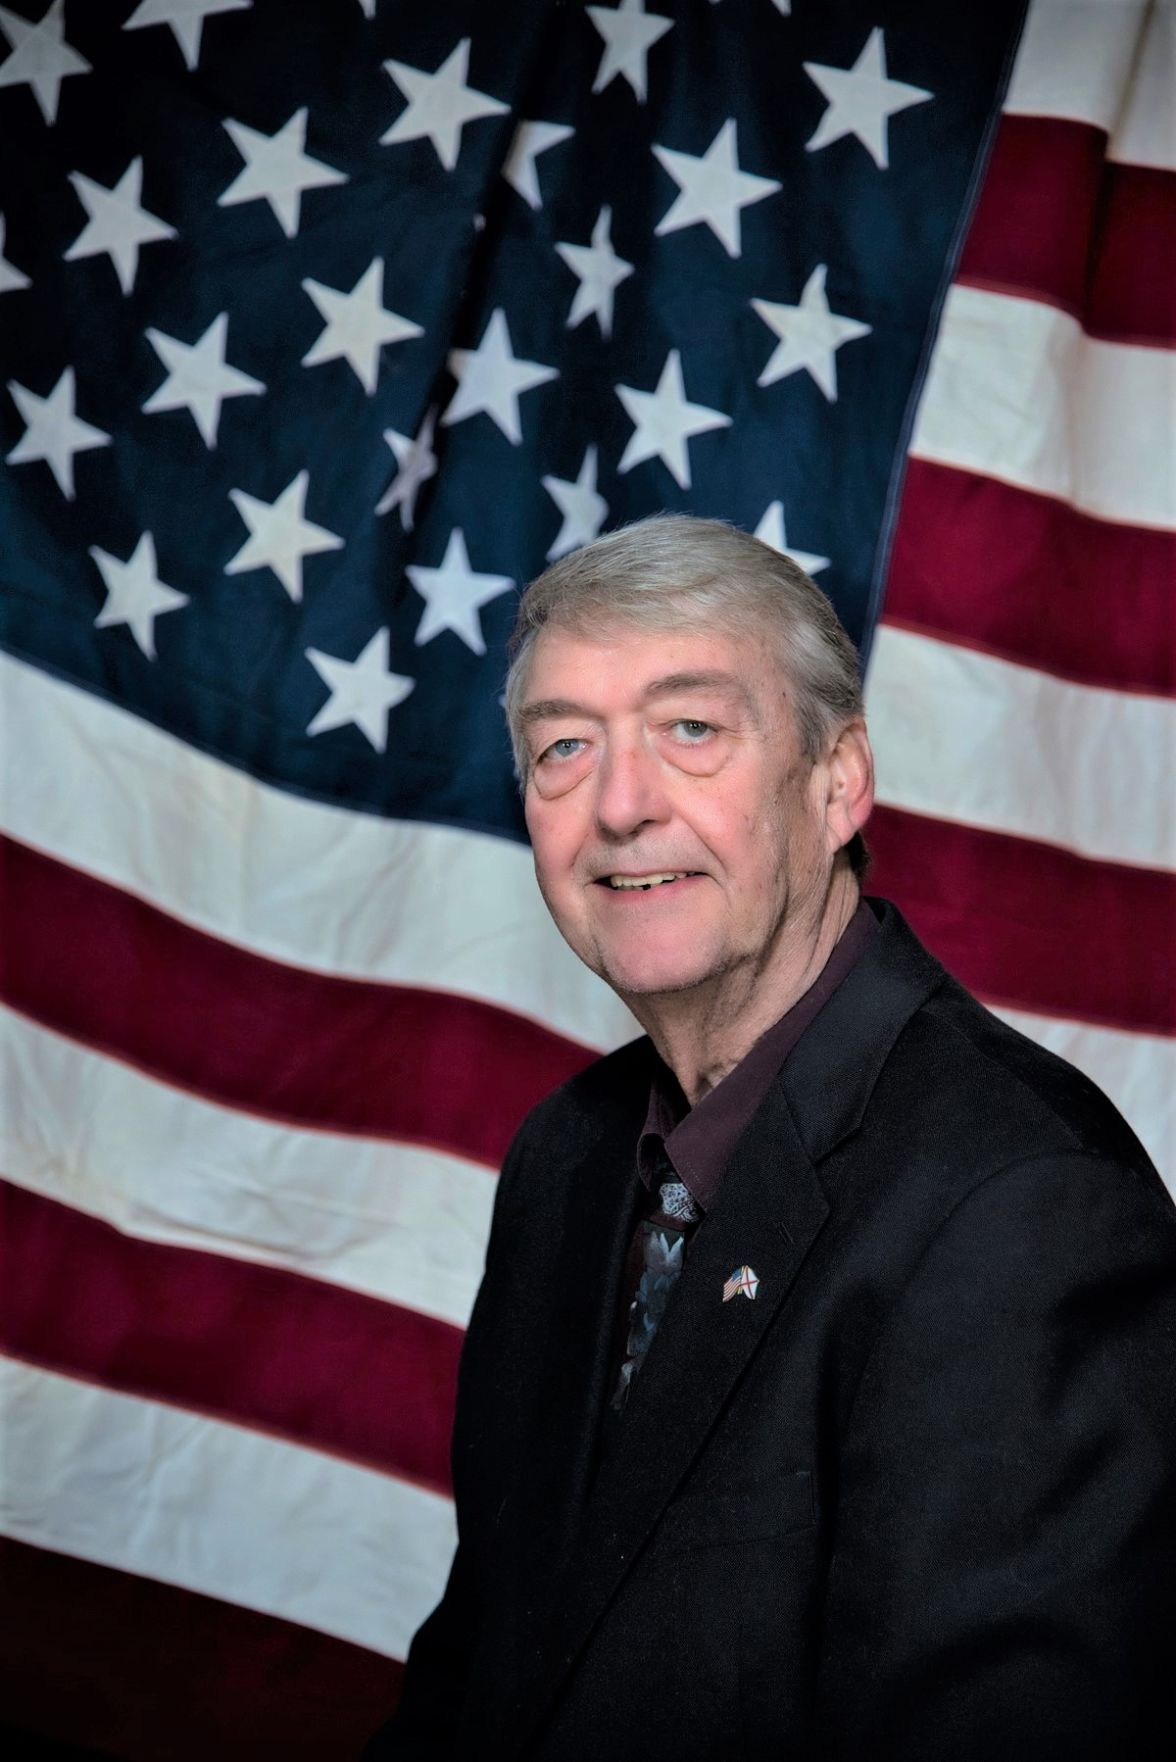 Sylacauga native Jack Brewer qualifies to run for Coosa County coroner